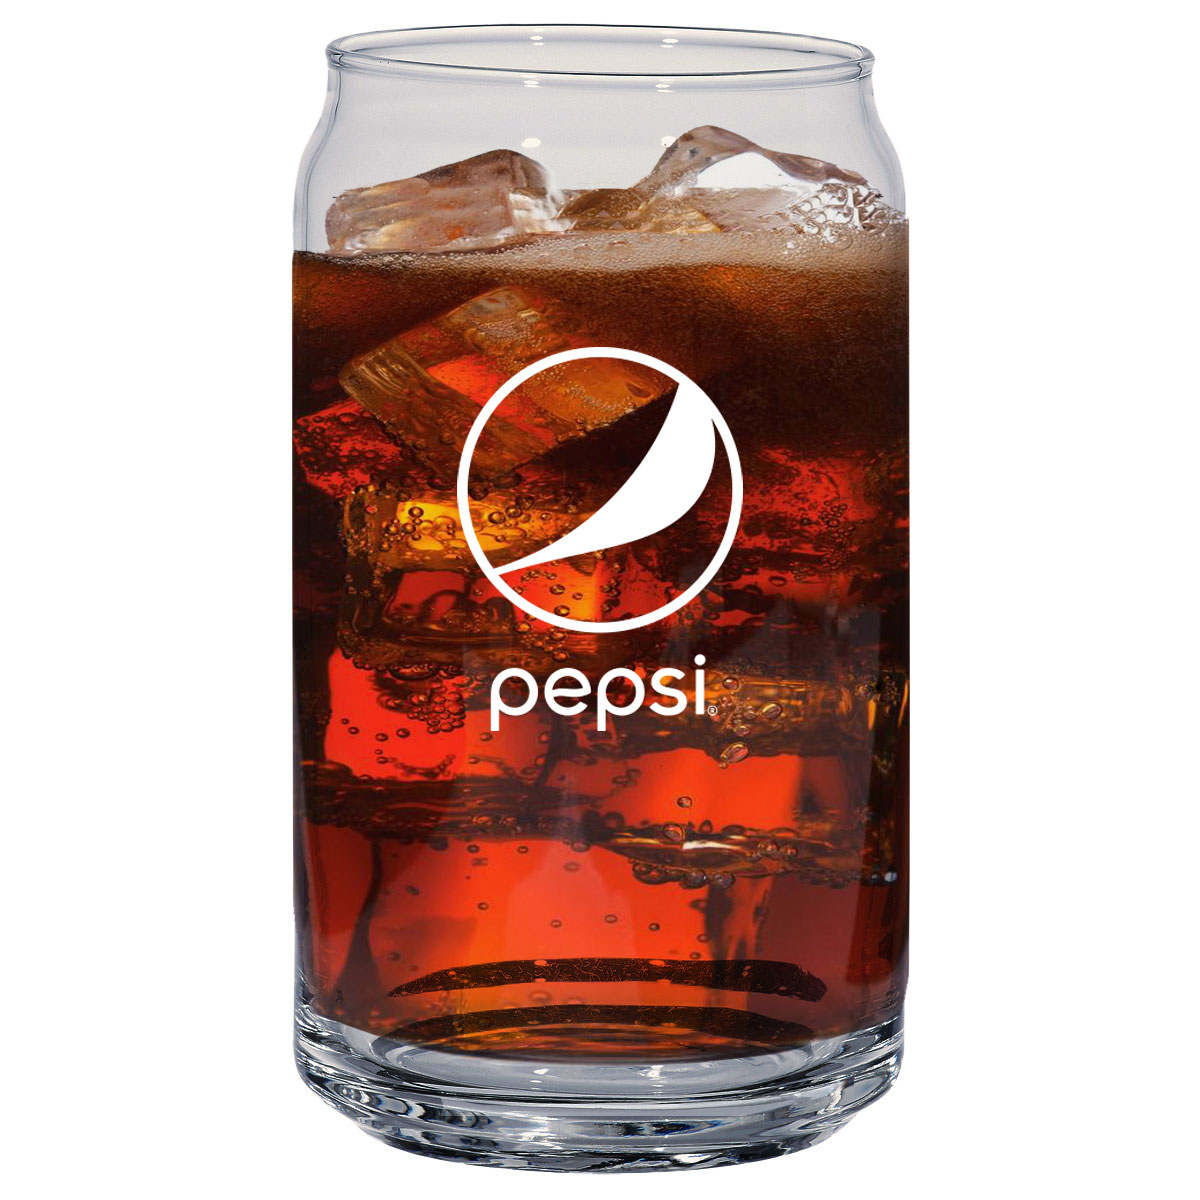 16 Oz. Glass Can - 24pcs/Pack - Pepsi - Login For Special $